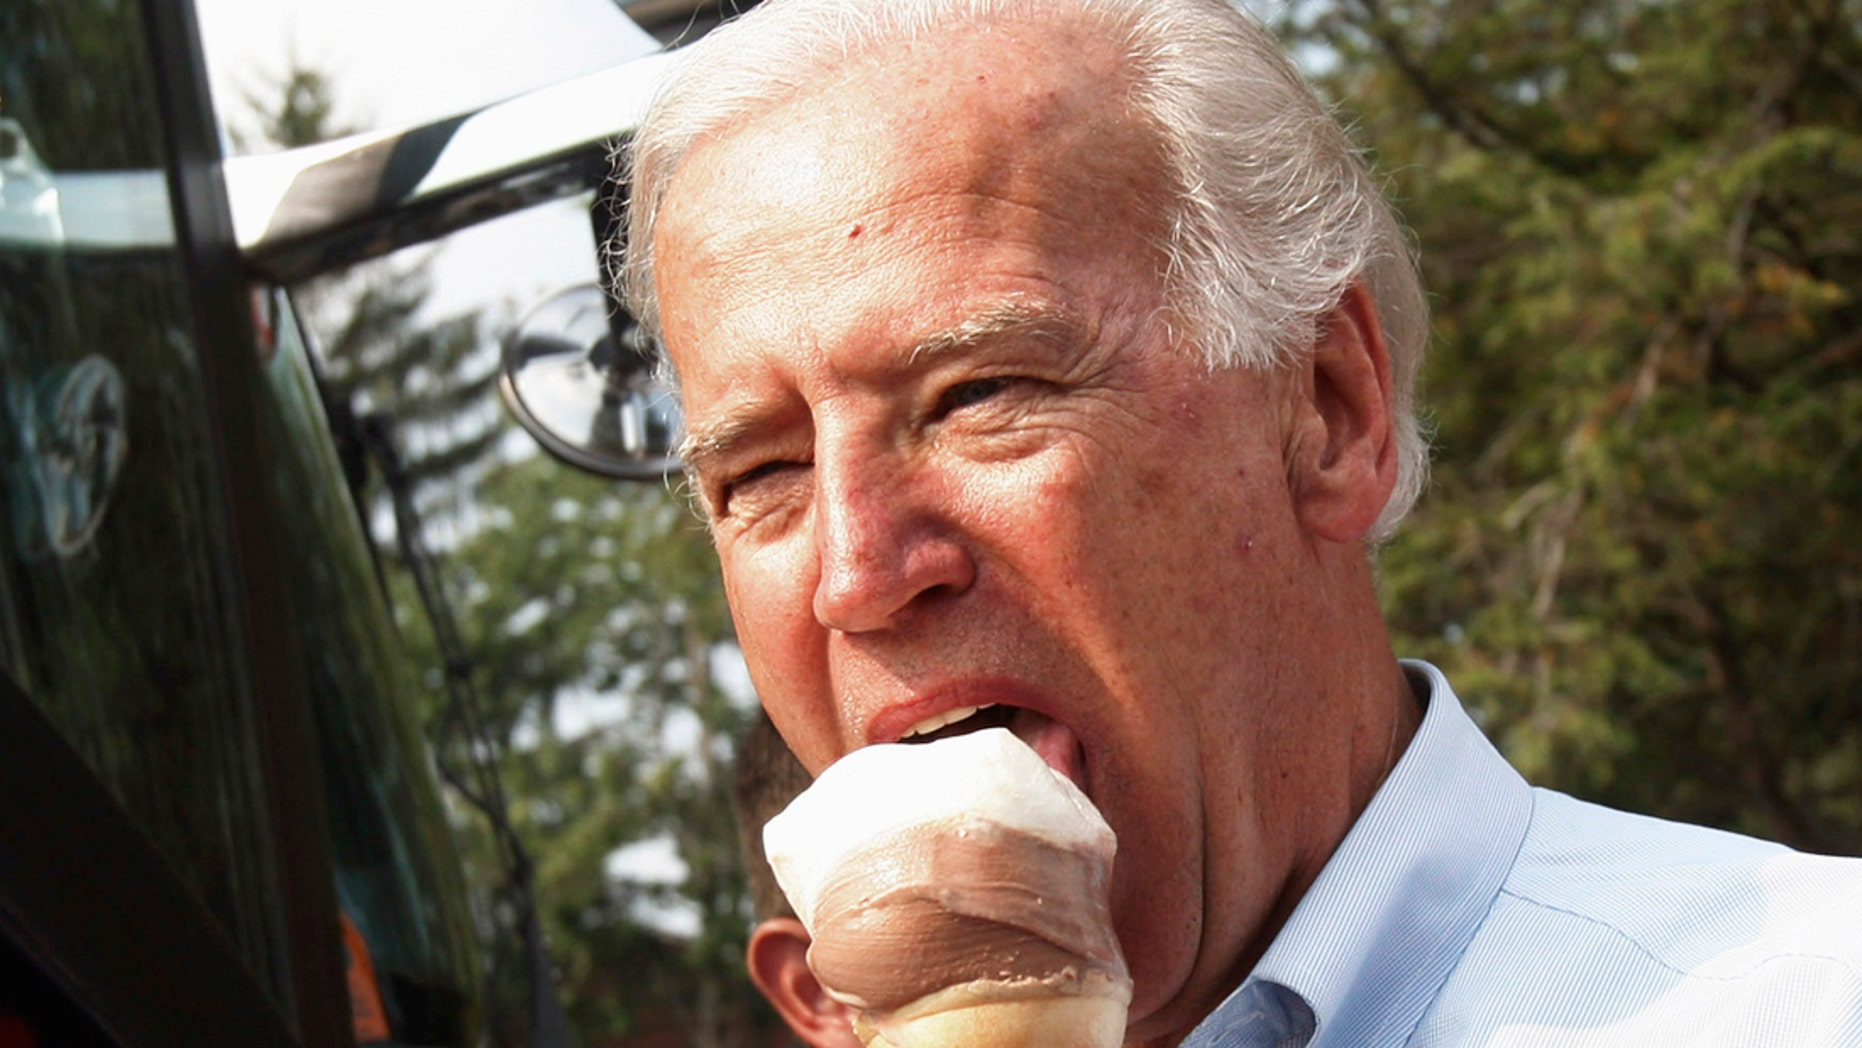 In this file photo, former vice president Joe Biden enjoys ice cream during a campaign stop at Windmill Ice Cream Shop in Aliquippa, Pennsylvania, August 29, 2008.